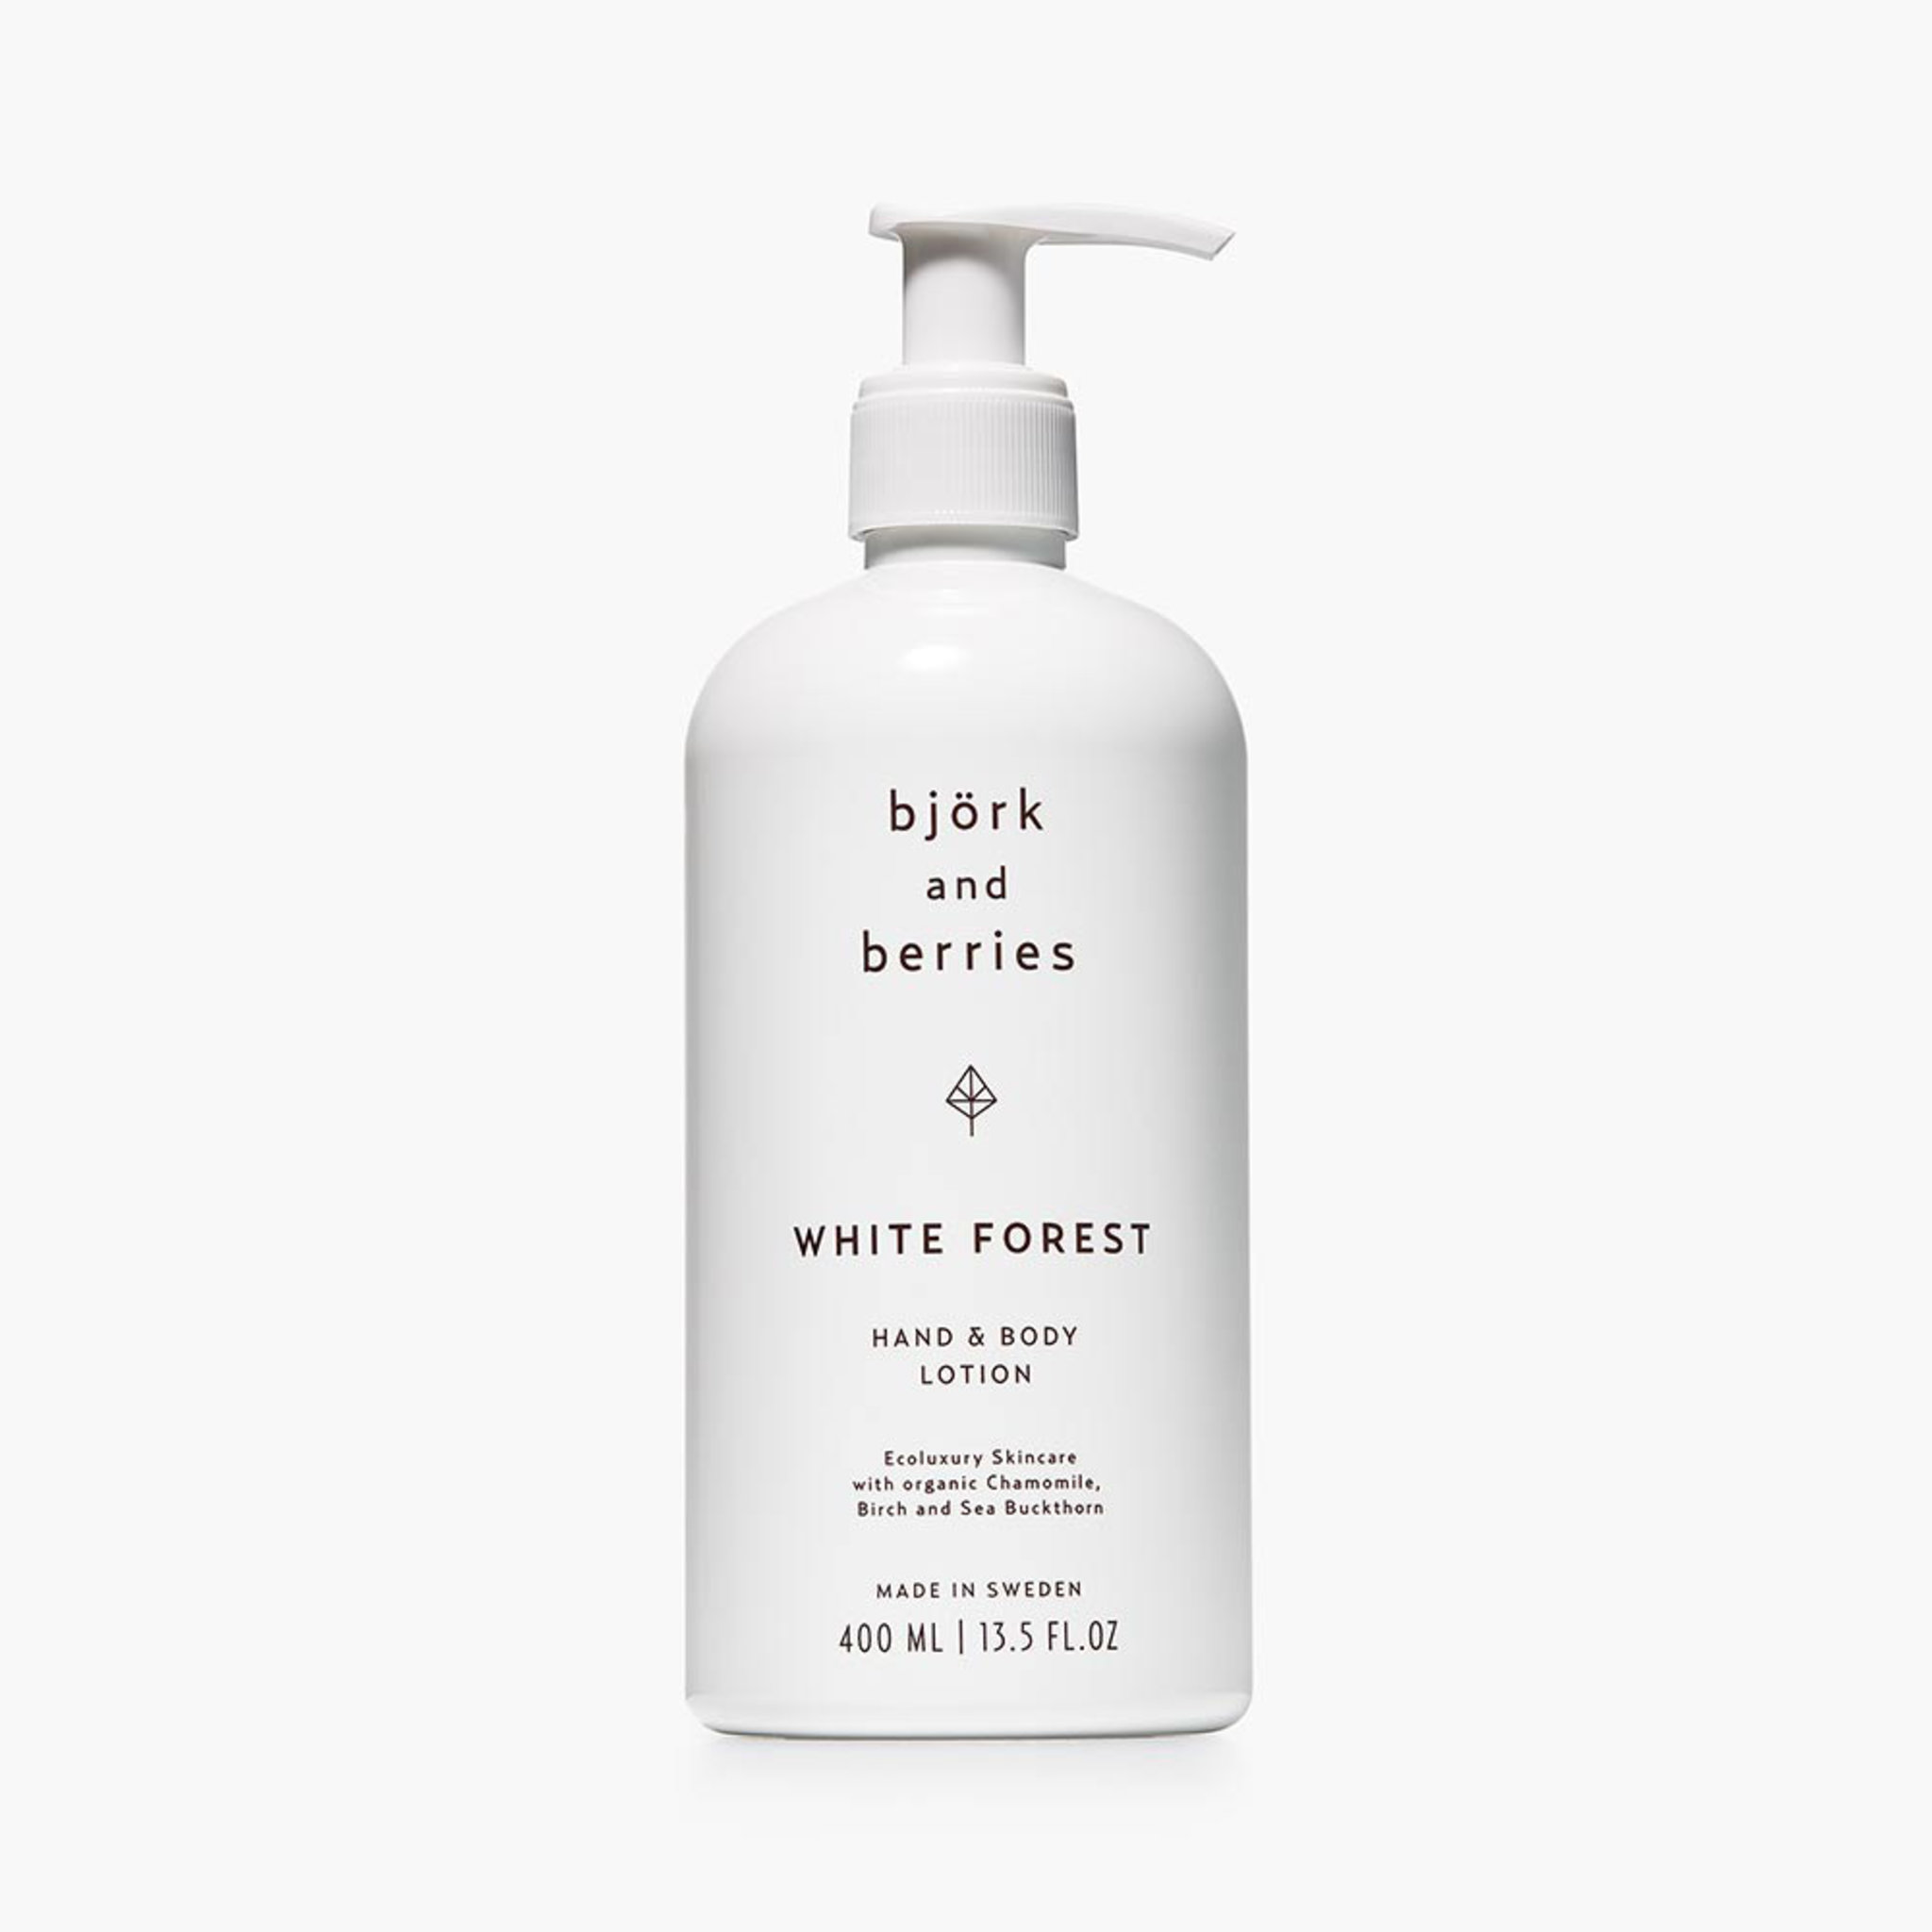 White Forest Hand & Body Lotion, 400 ml